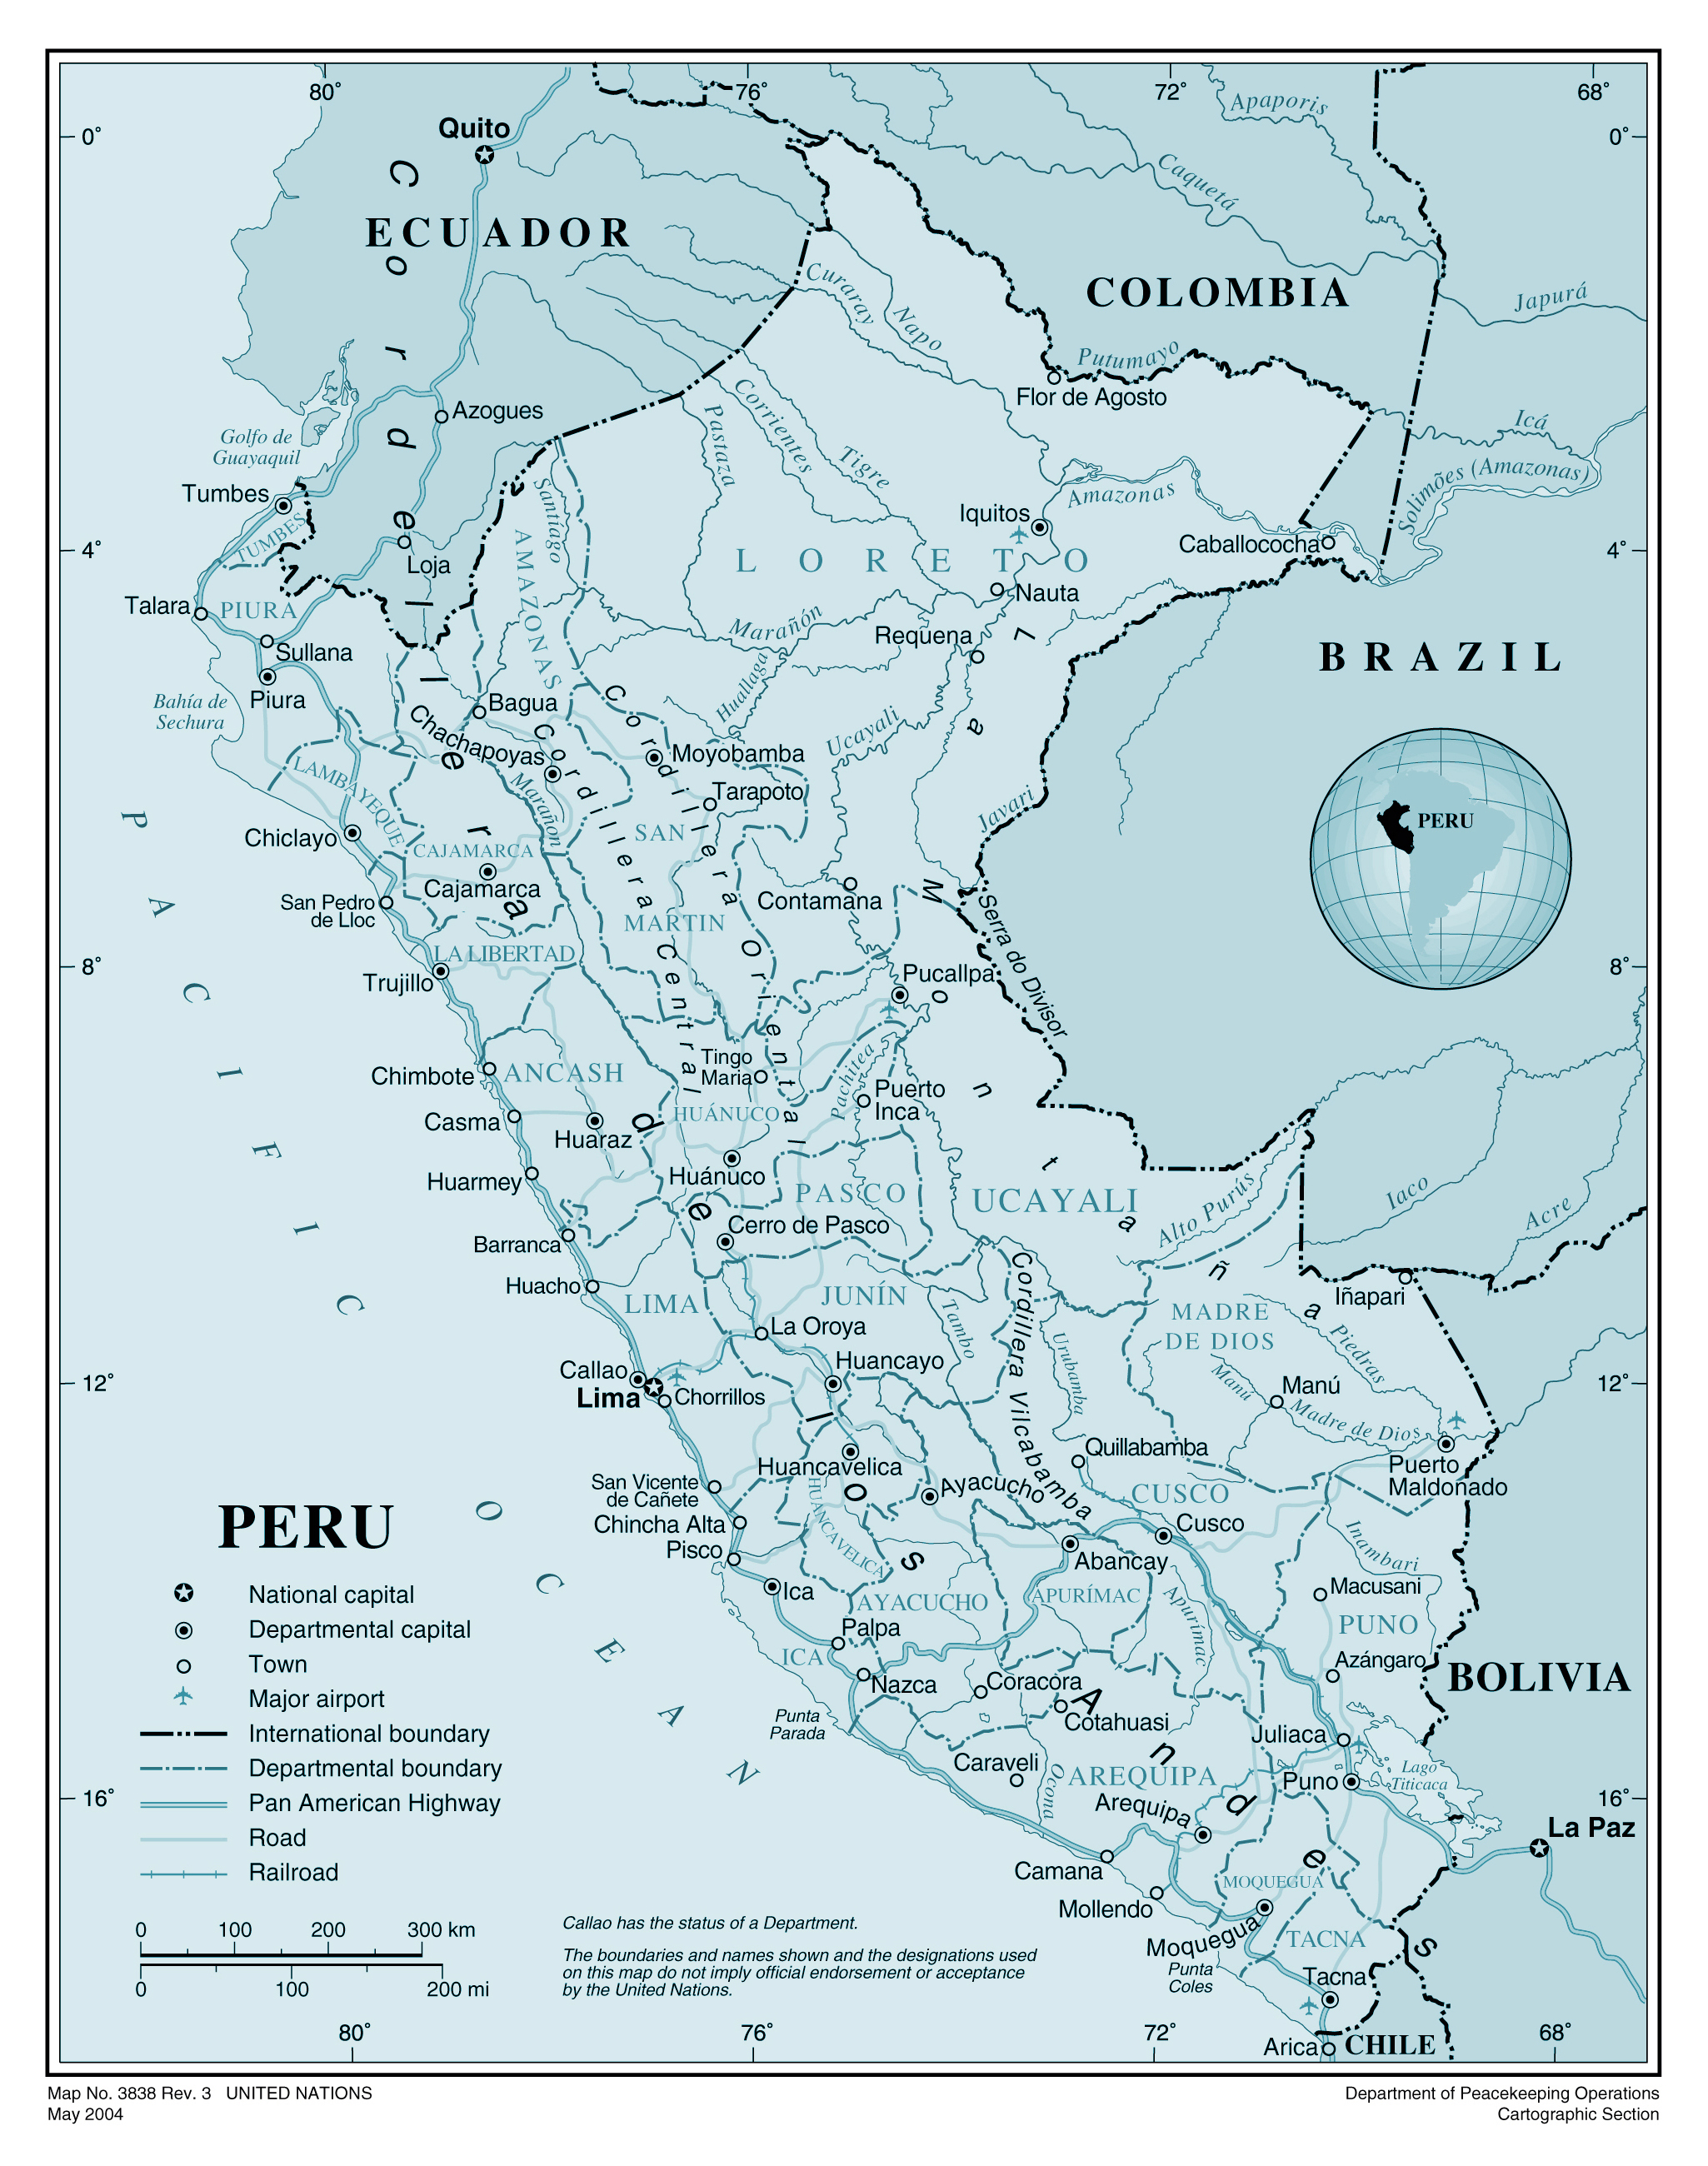 Peru Map Cities.Large Detailed Political And Administrative Map Of Peru With Roads